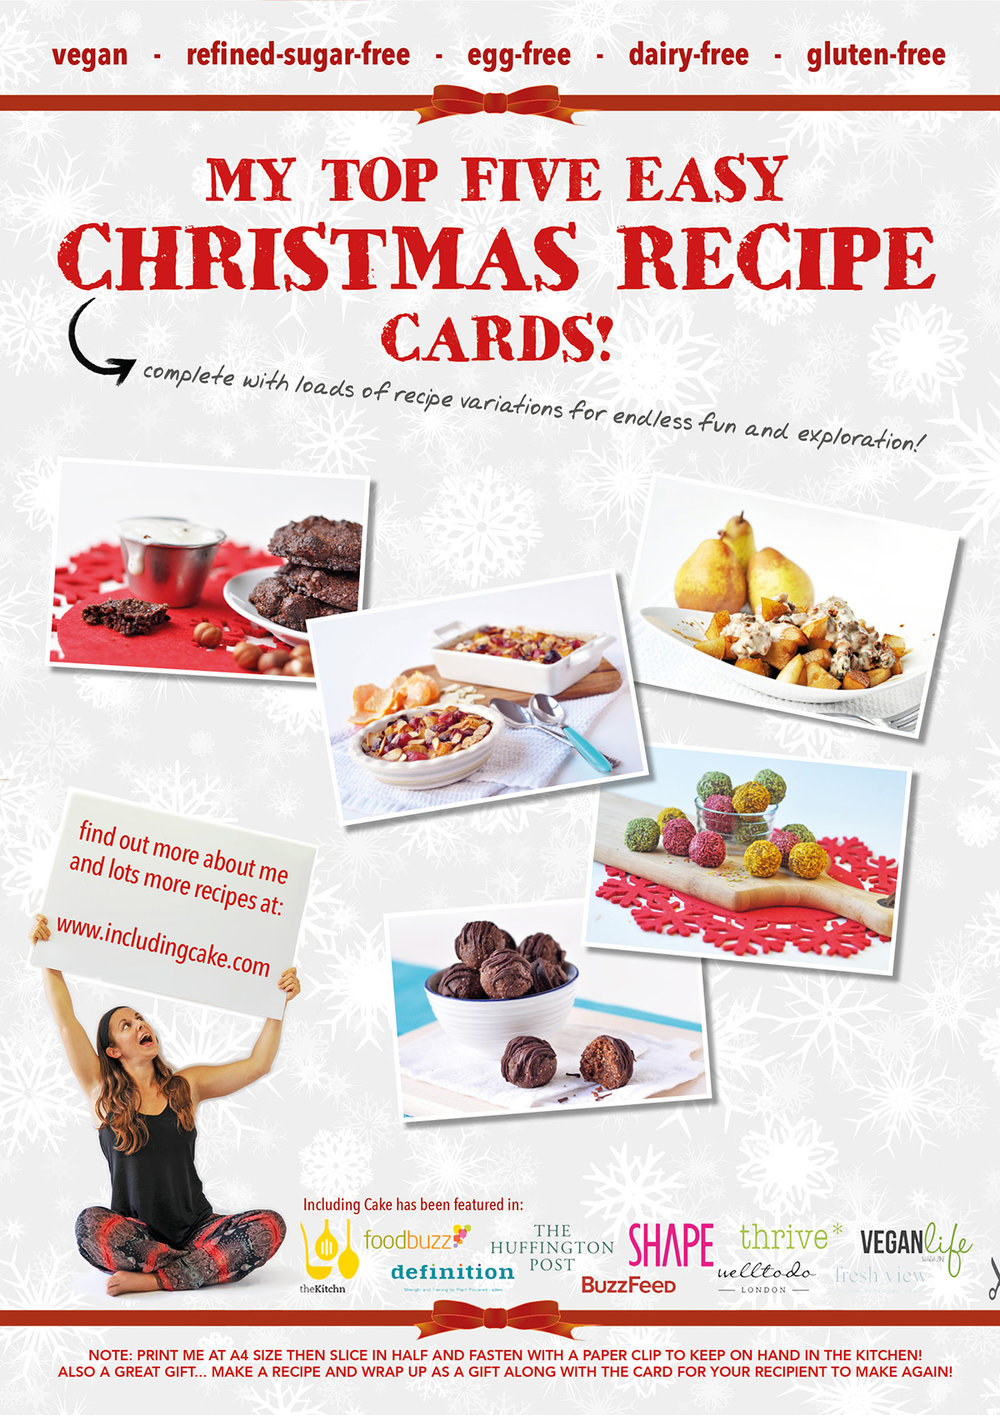 xmas 2016 recipe cards cover.jpg